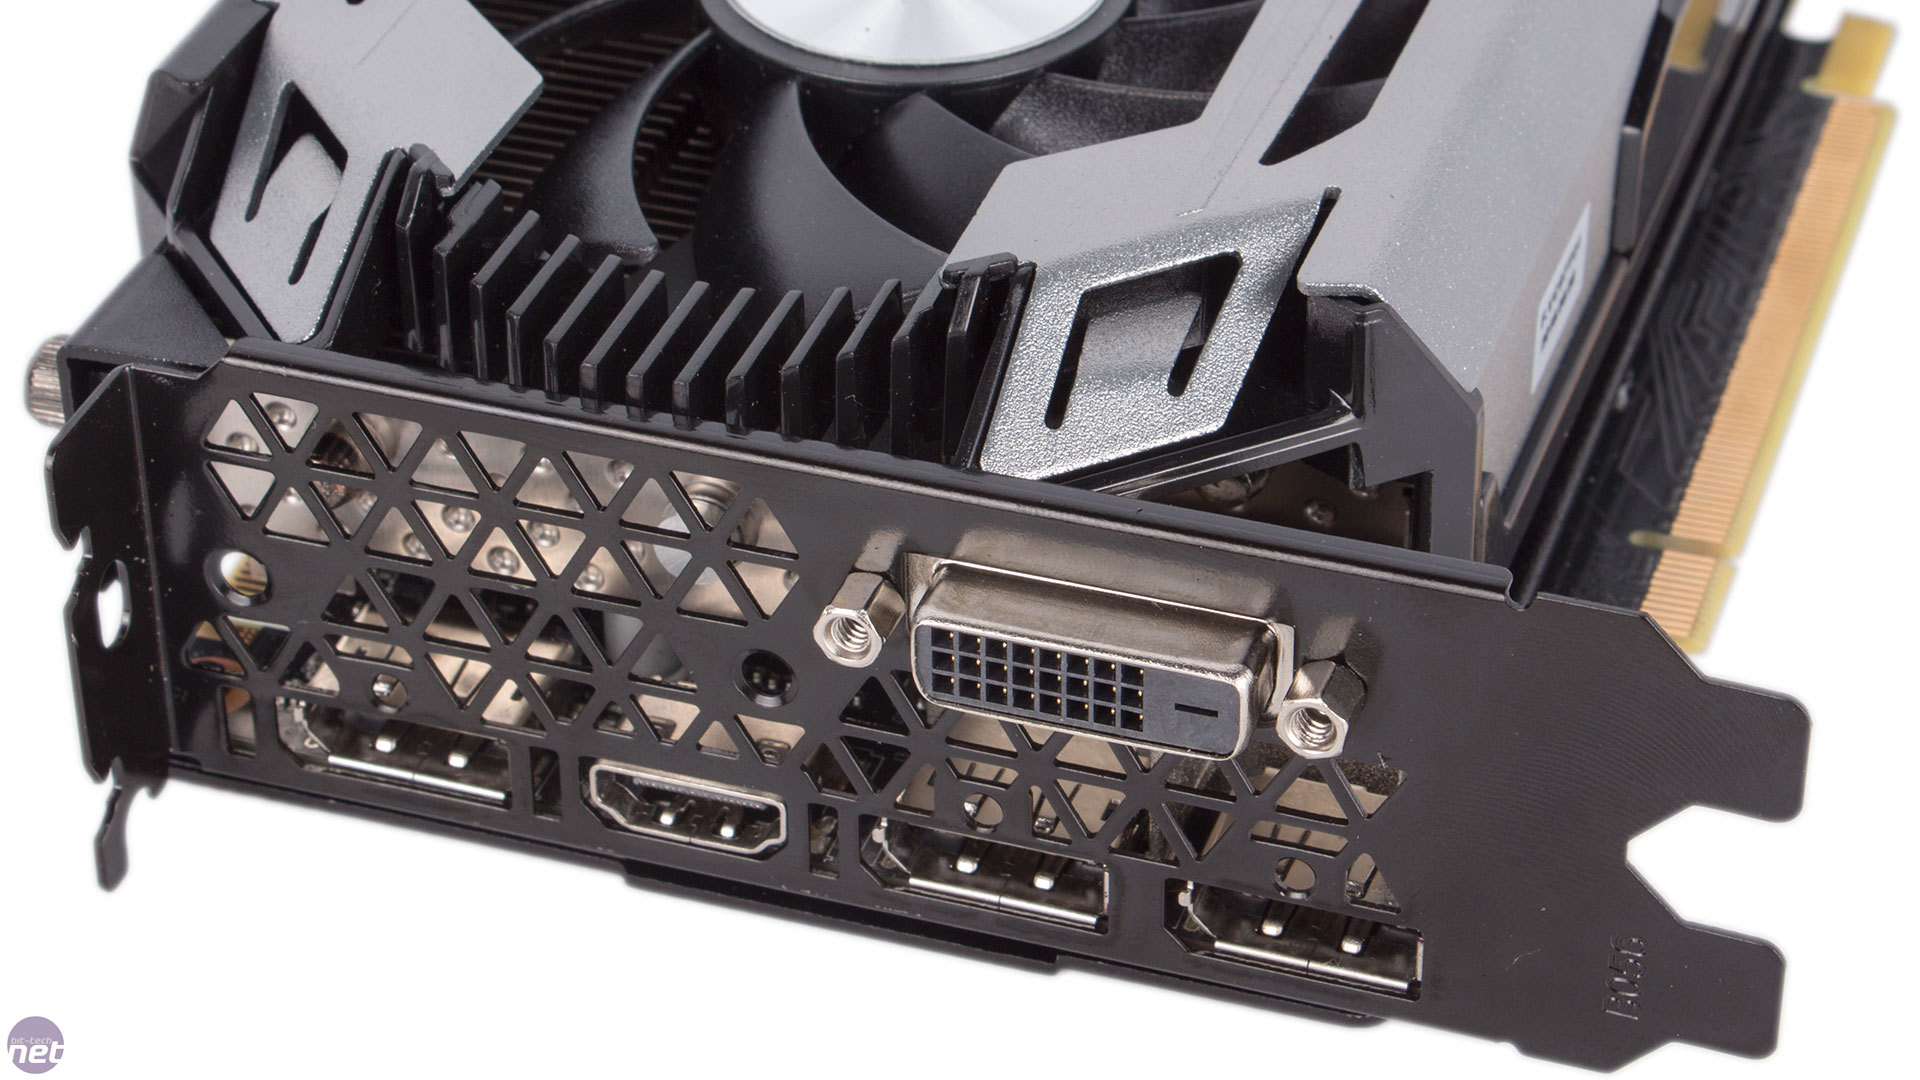 Carte graphique Inno3D GeForce GTX 1070 iCHILL X3 8 Go DDR5X PCIe 3.0, informatique reunion, informatique ile de la Réunion 974